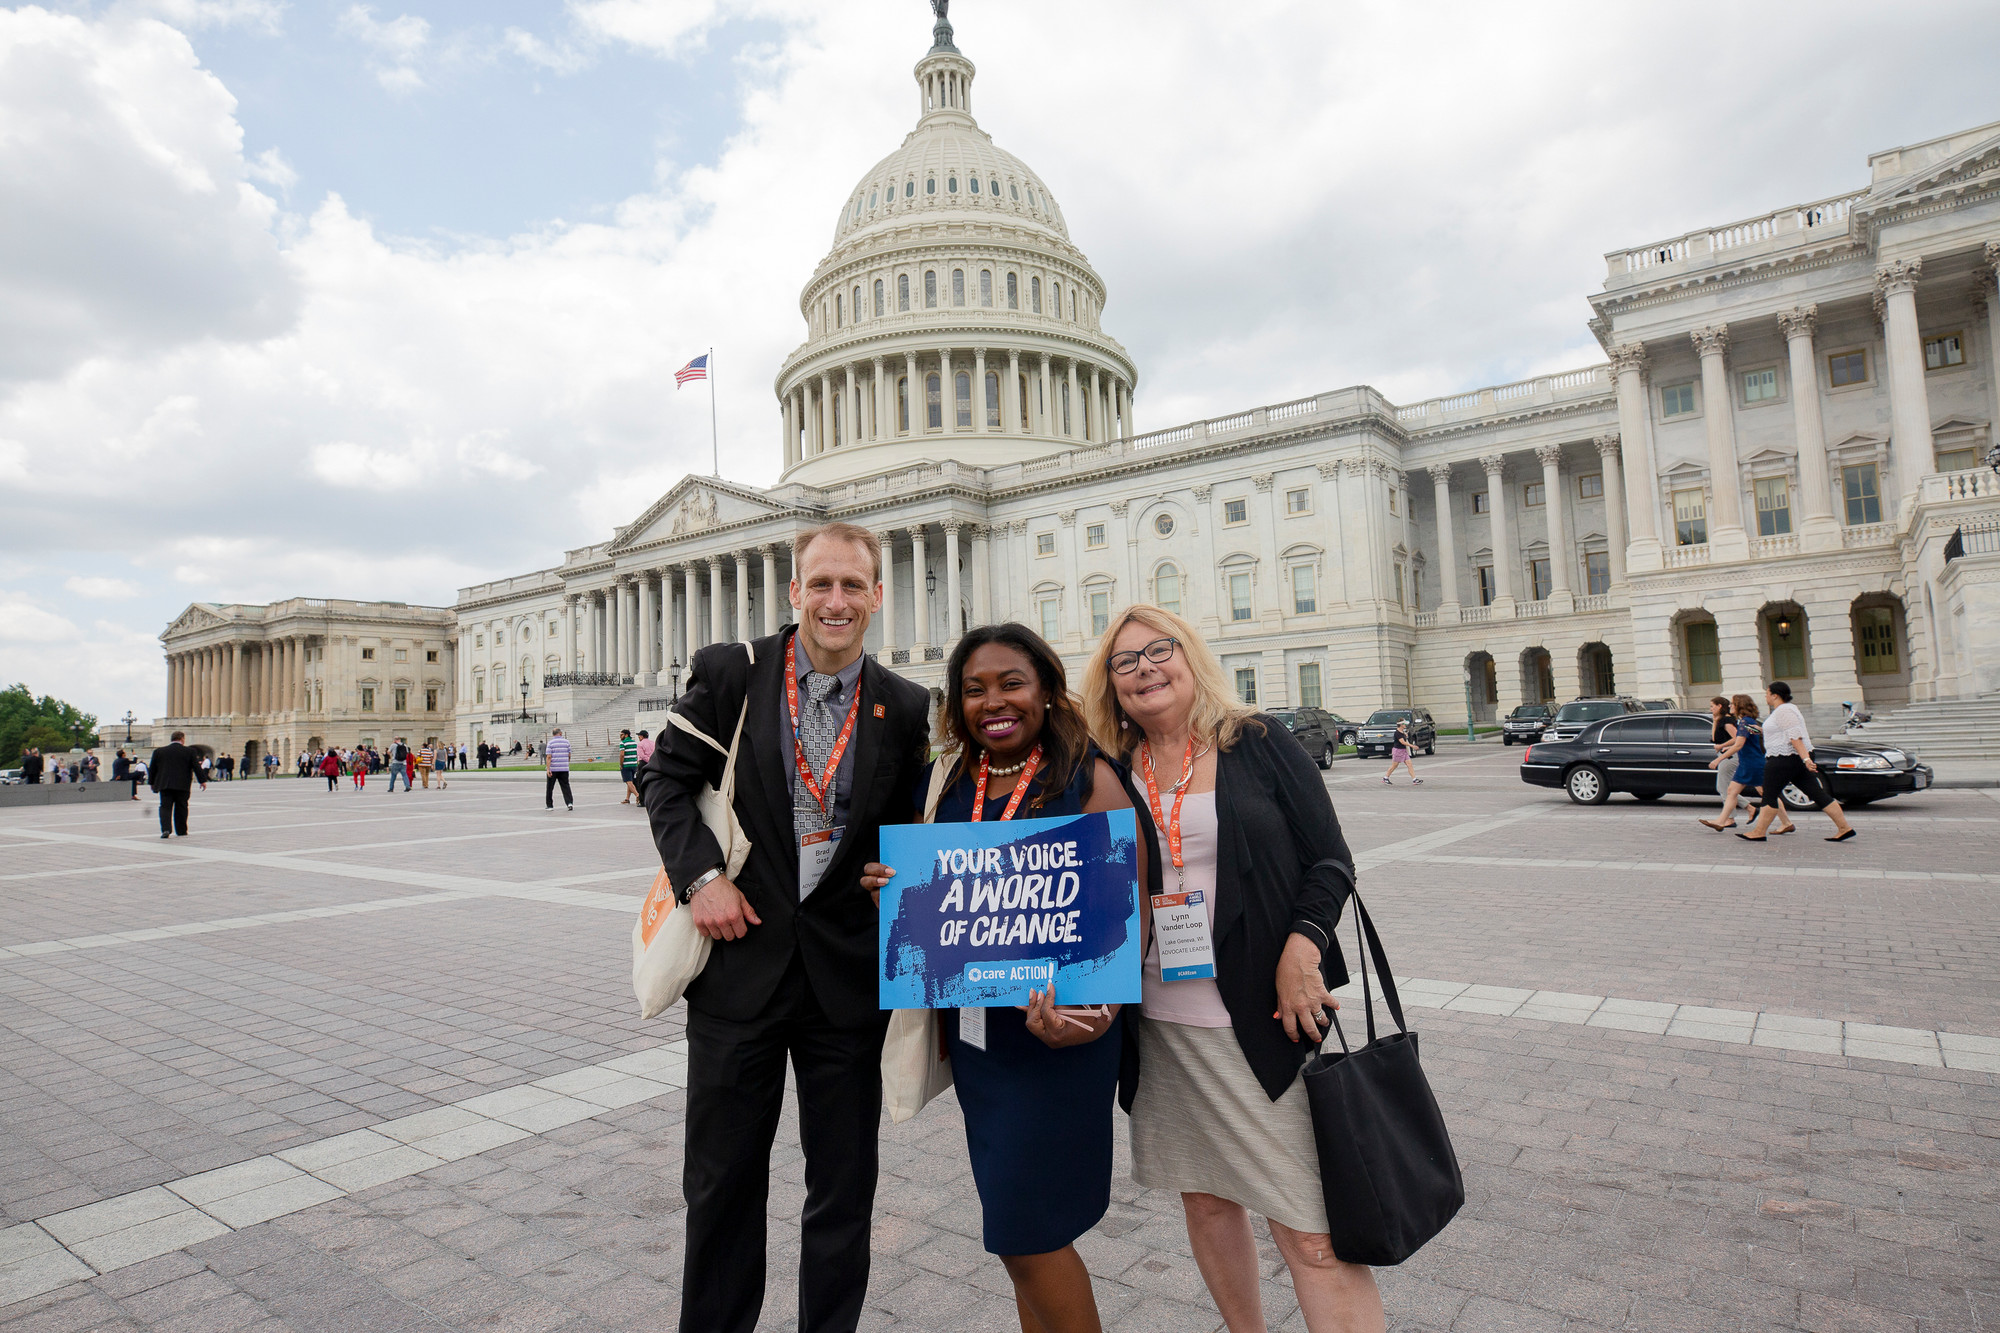 A man and two women stand in front of the US Capitol